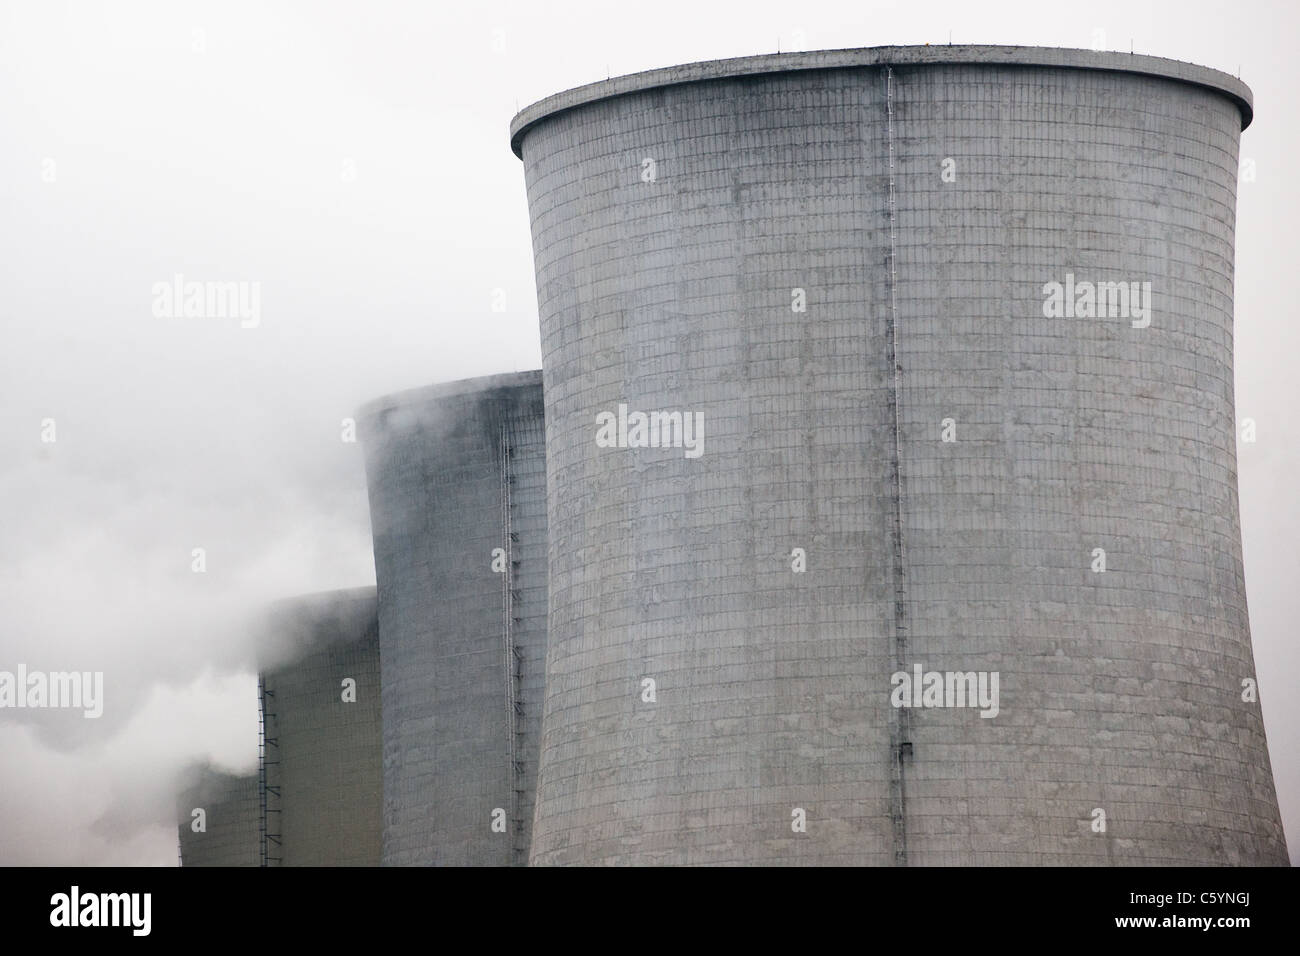 Steam smokes from the chimney of nuclear power plant. - Stock Image